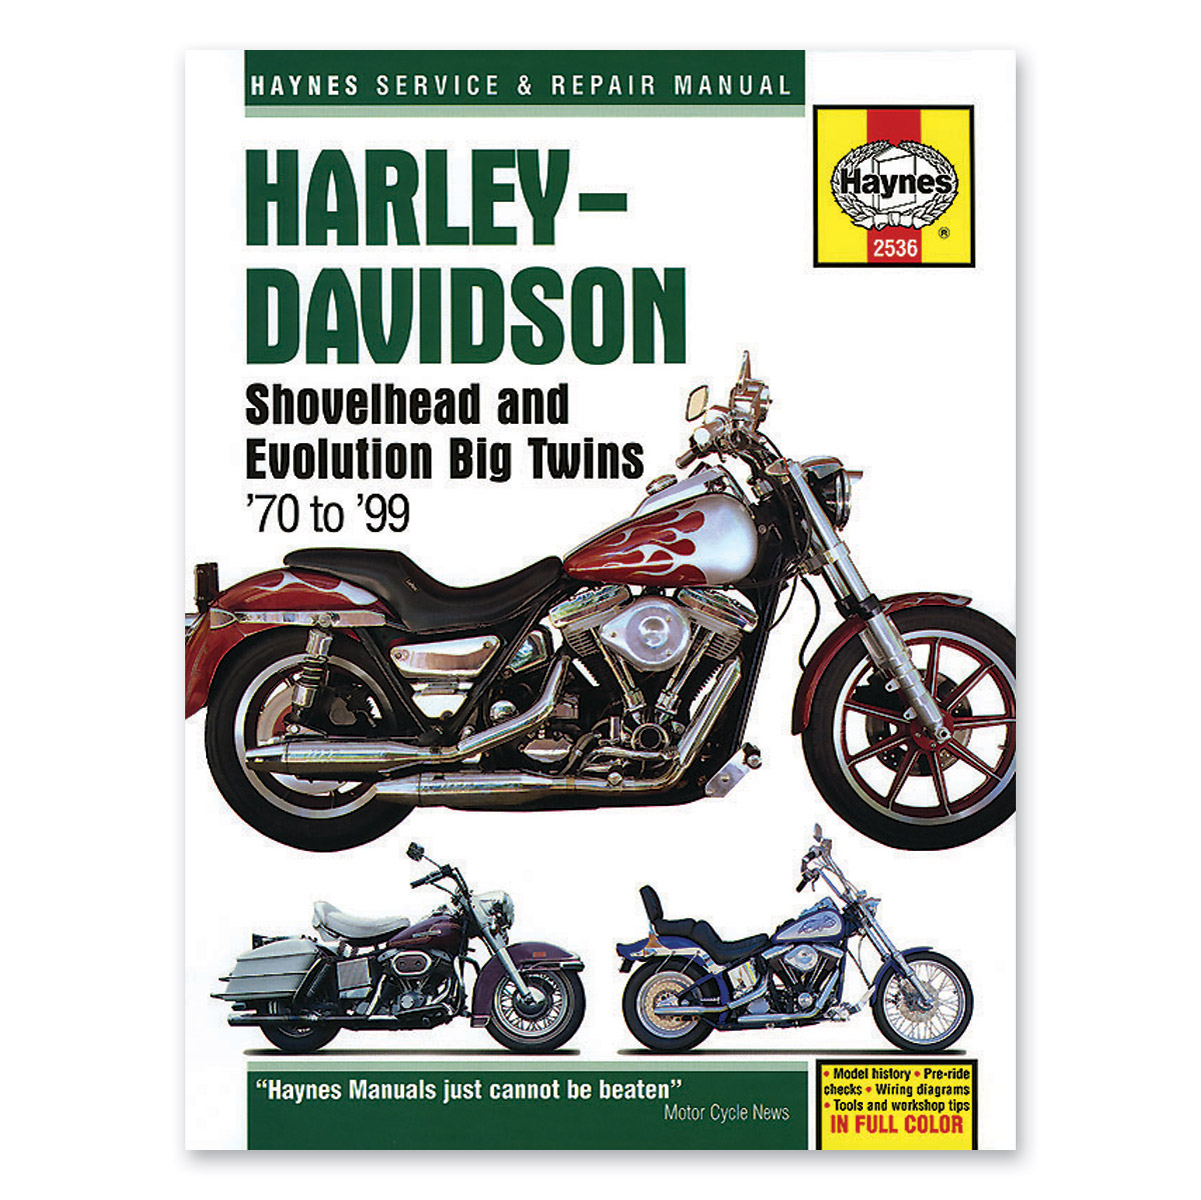 haynes shovelhead and evolution big twins manual 165 140 j p cycles rh jpcycles com harley davidson shovelhead repair manual harley davidson shovelhead service manual pdf